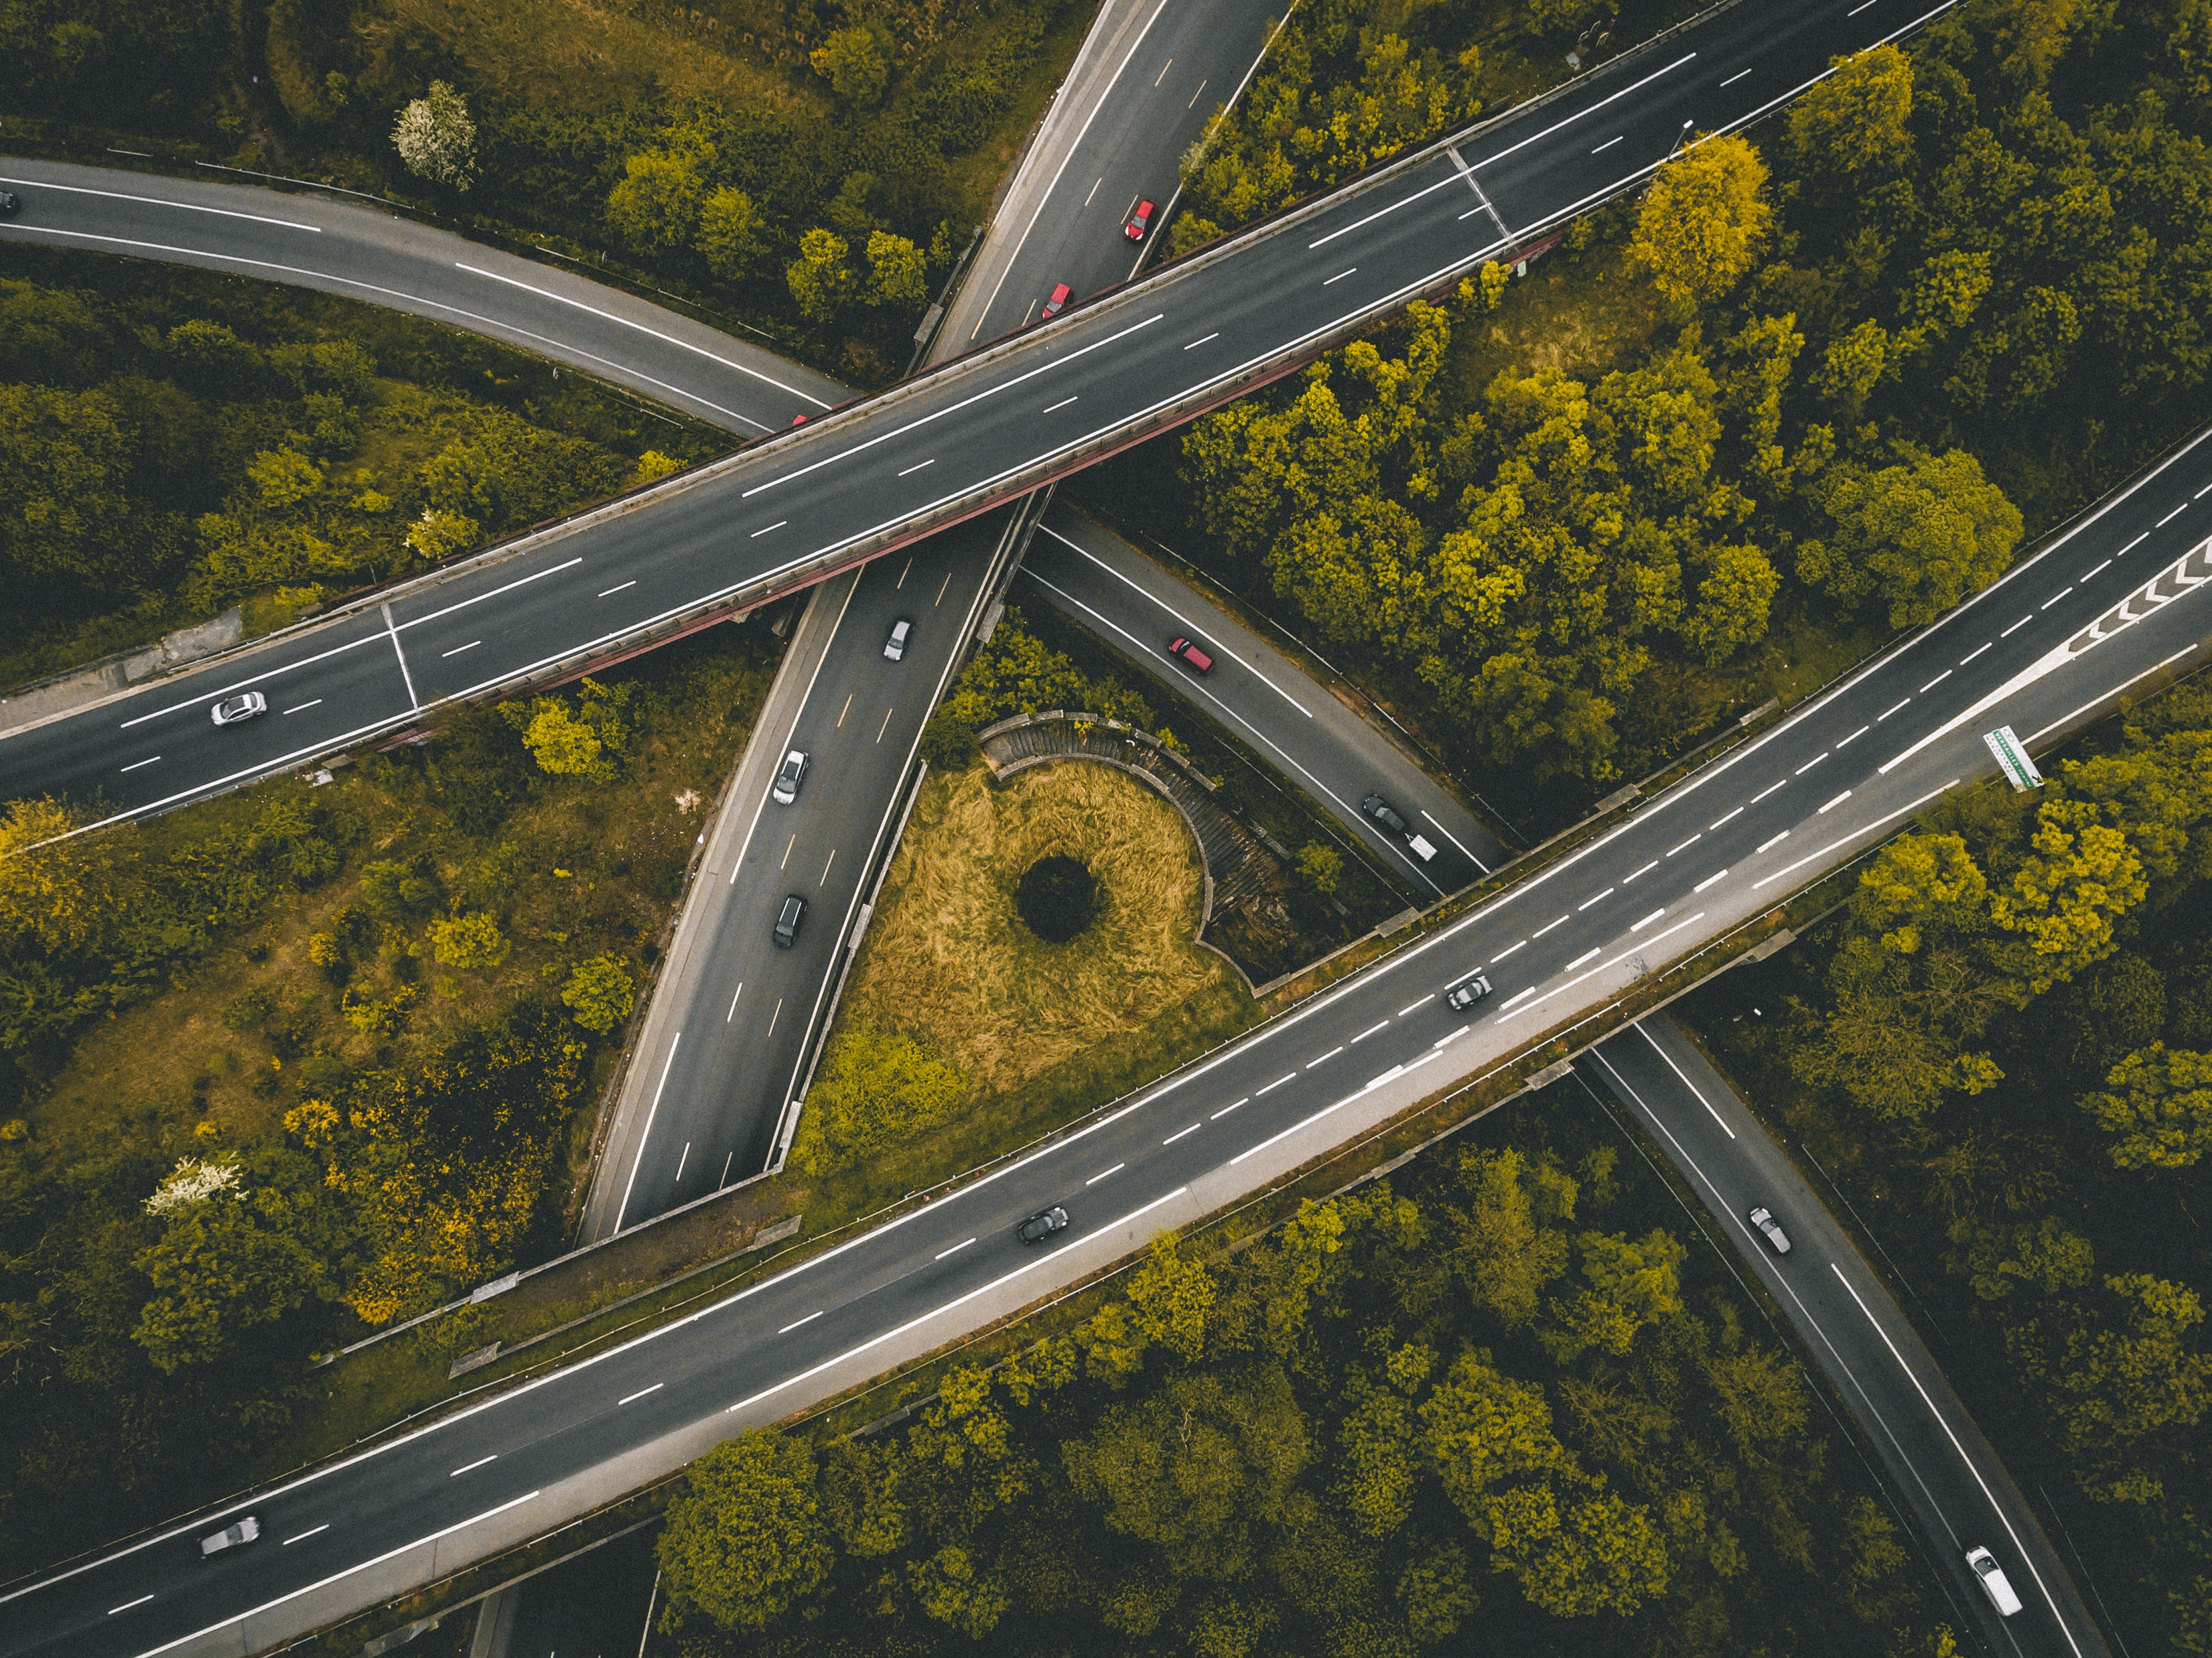 A drone shot of an intersection with an overpasses